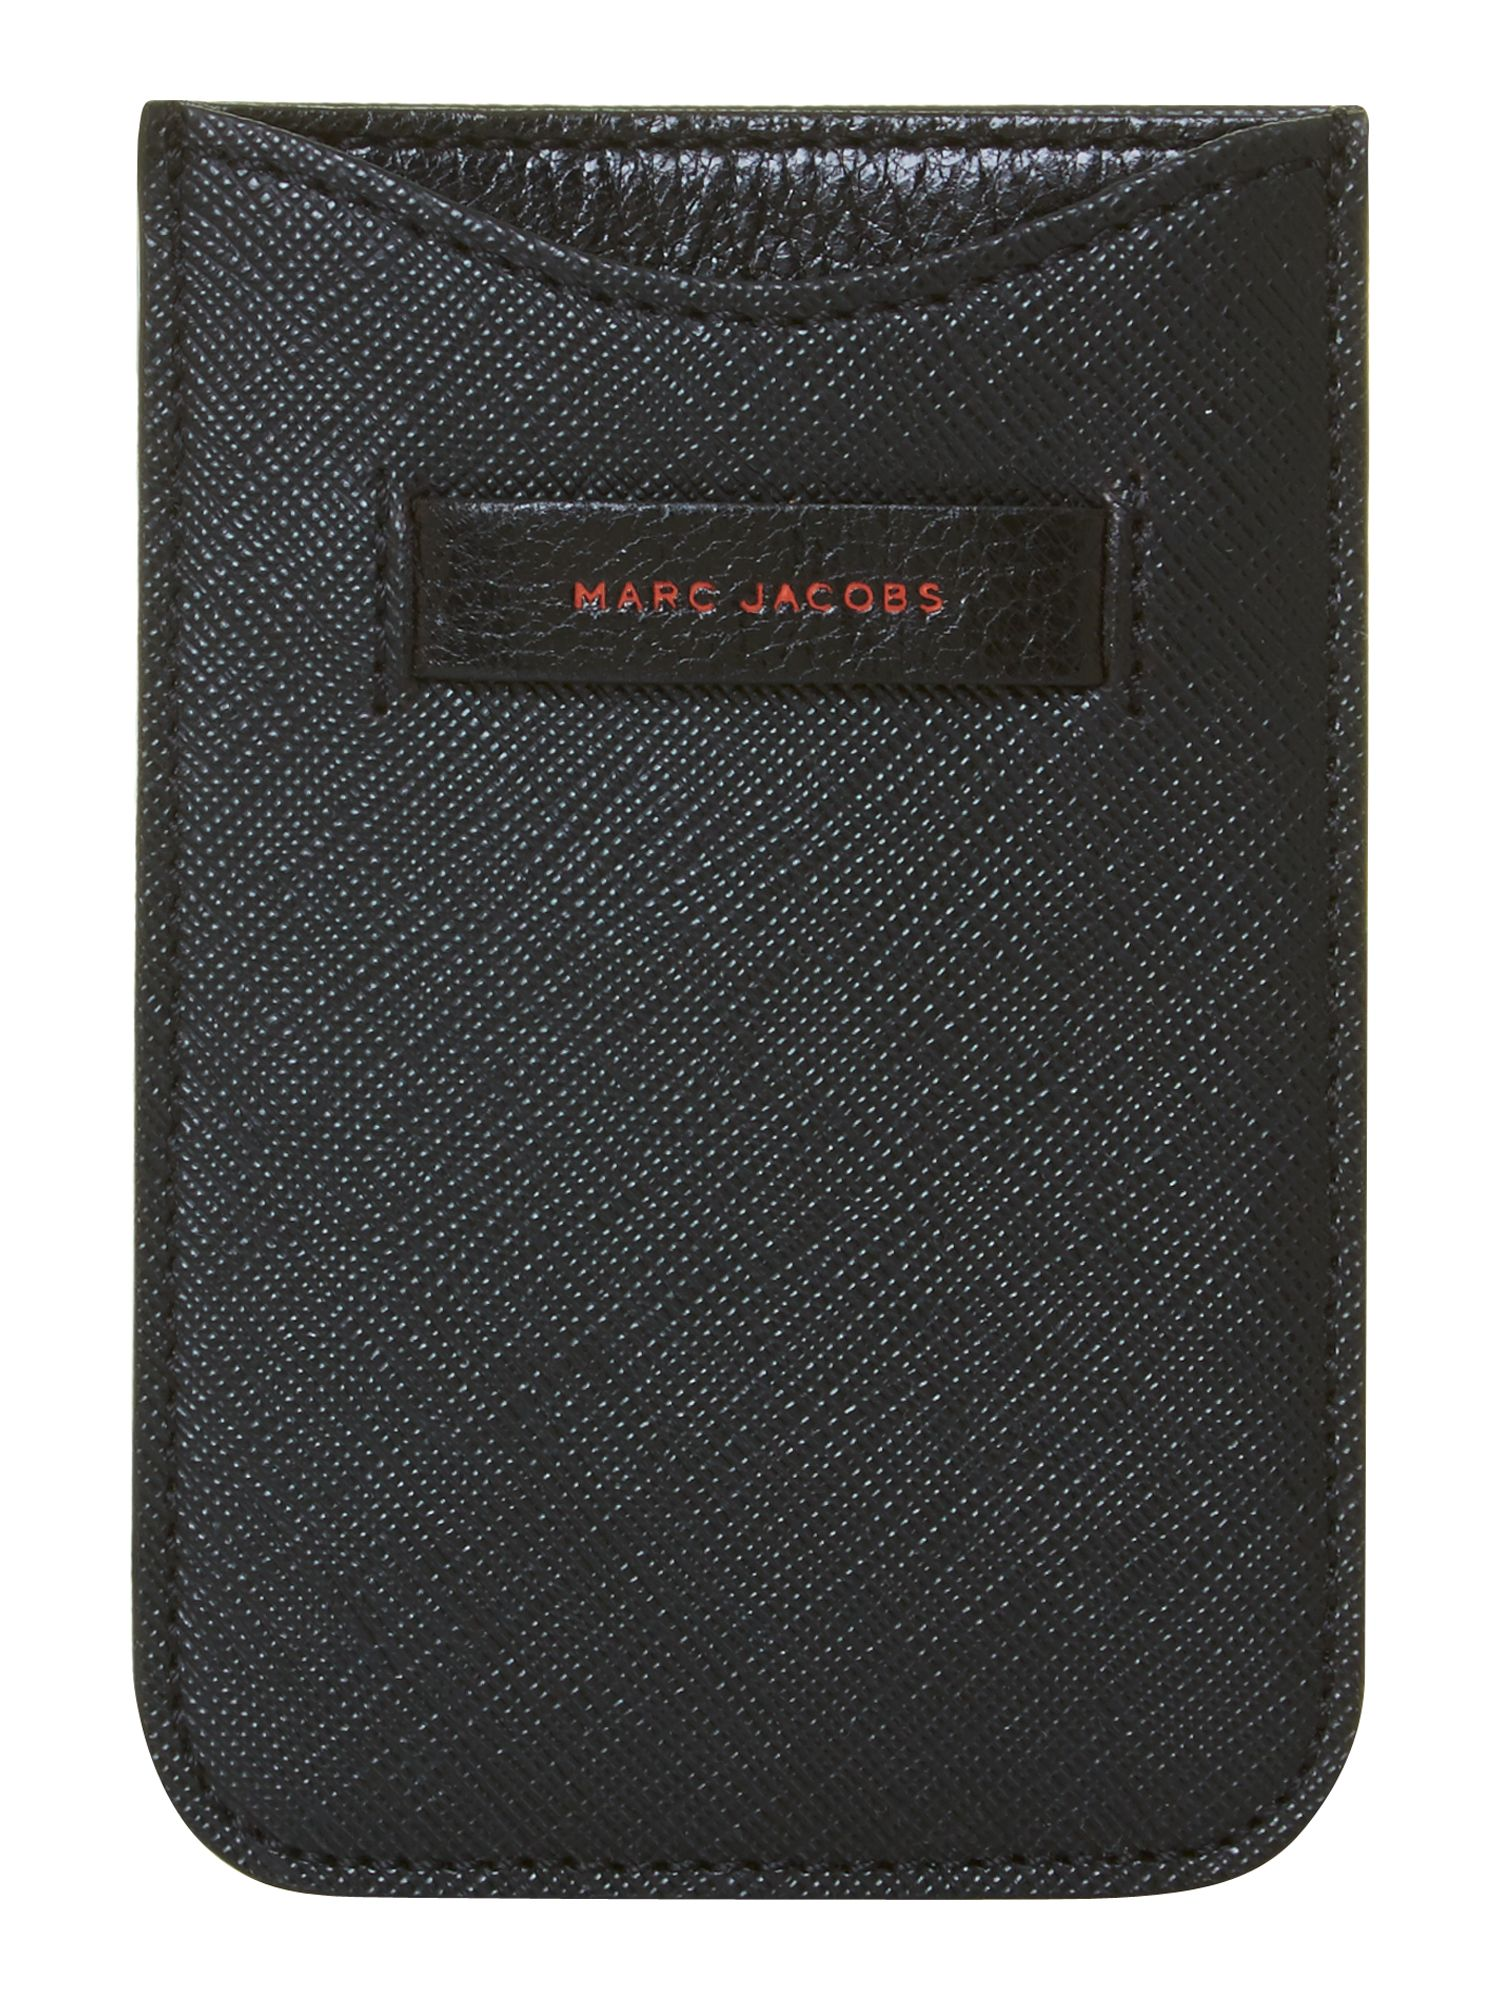 Saffiano iPhone sleeve